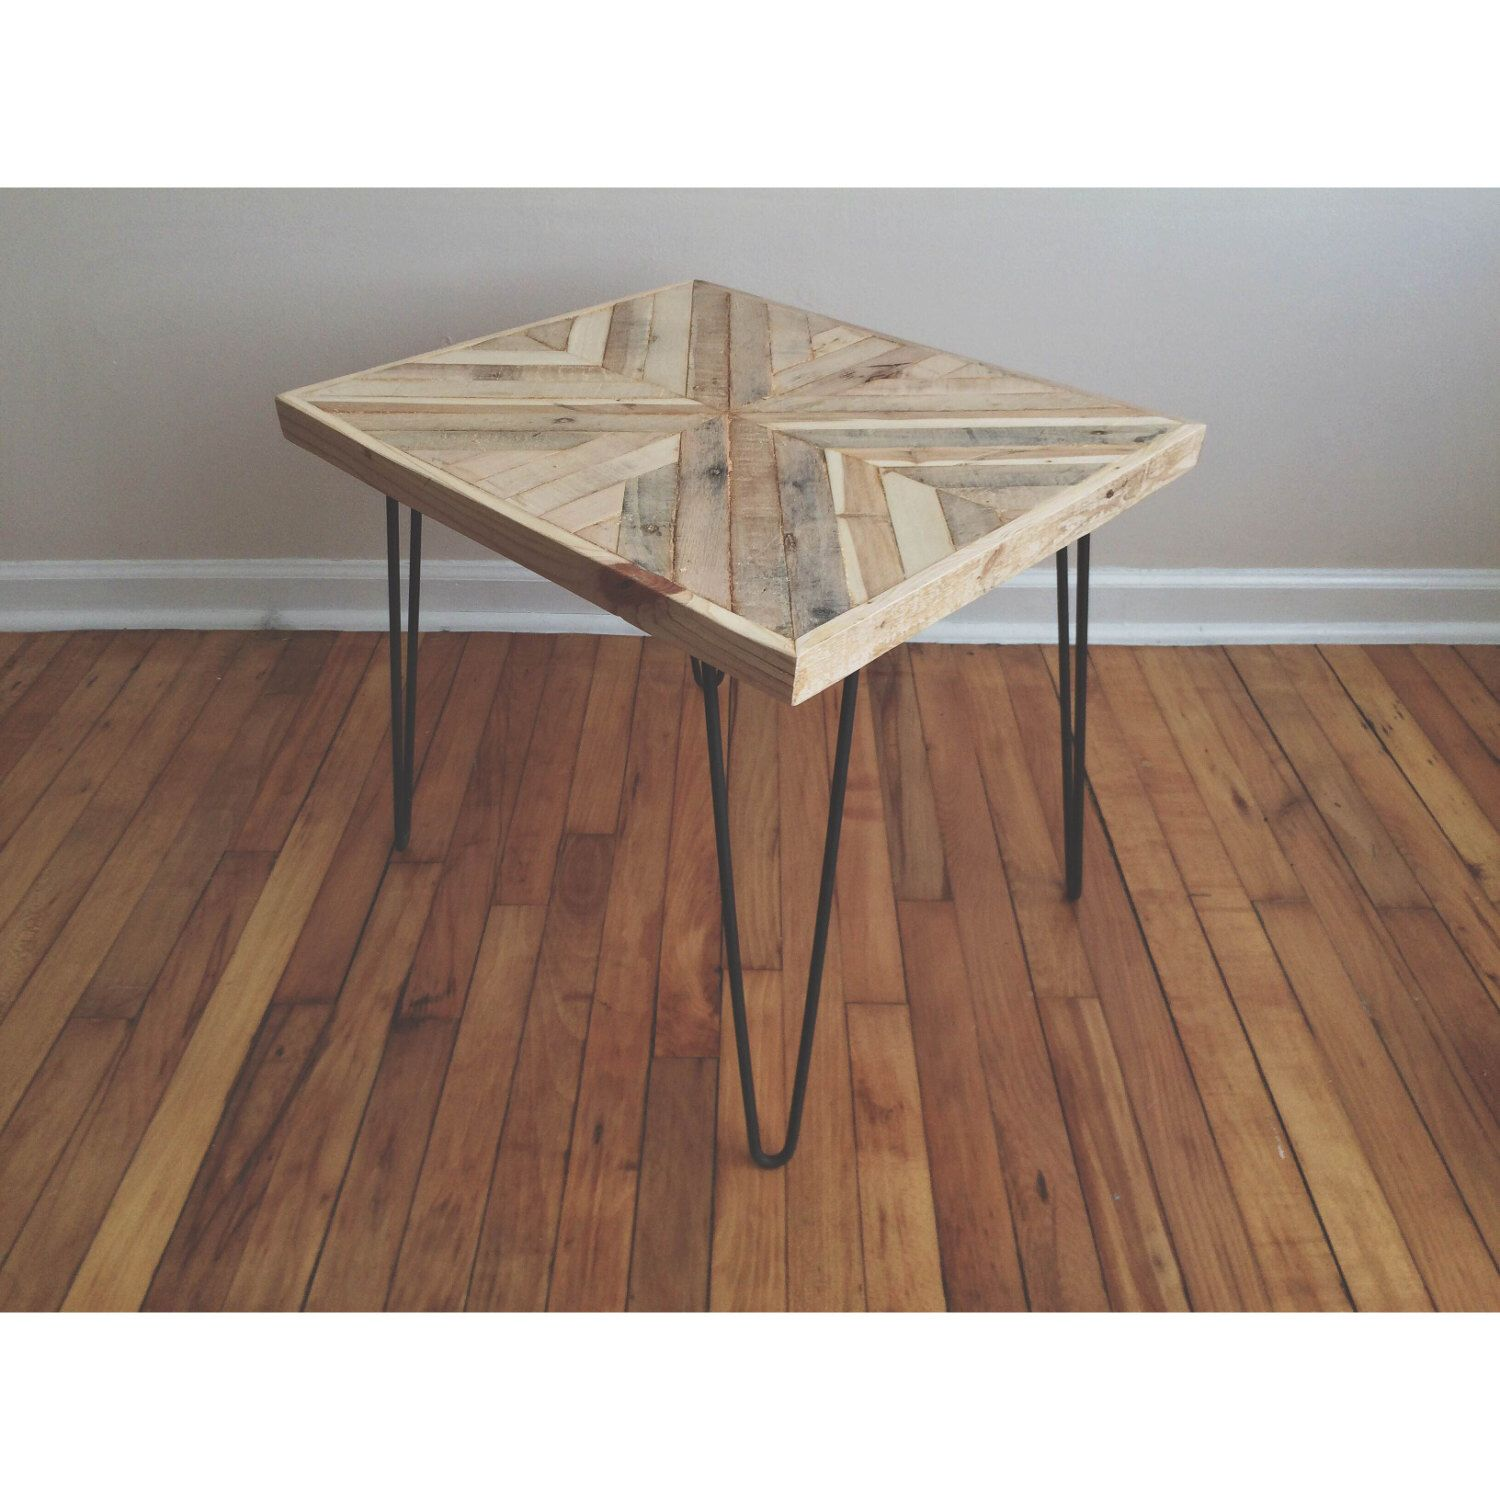 reclaimed rustic hairpin side table bnb carpentry room essentials accent reachandgrow etsy rectangular marble dining round red tablecloth small with top cool tablecloths yellow